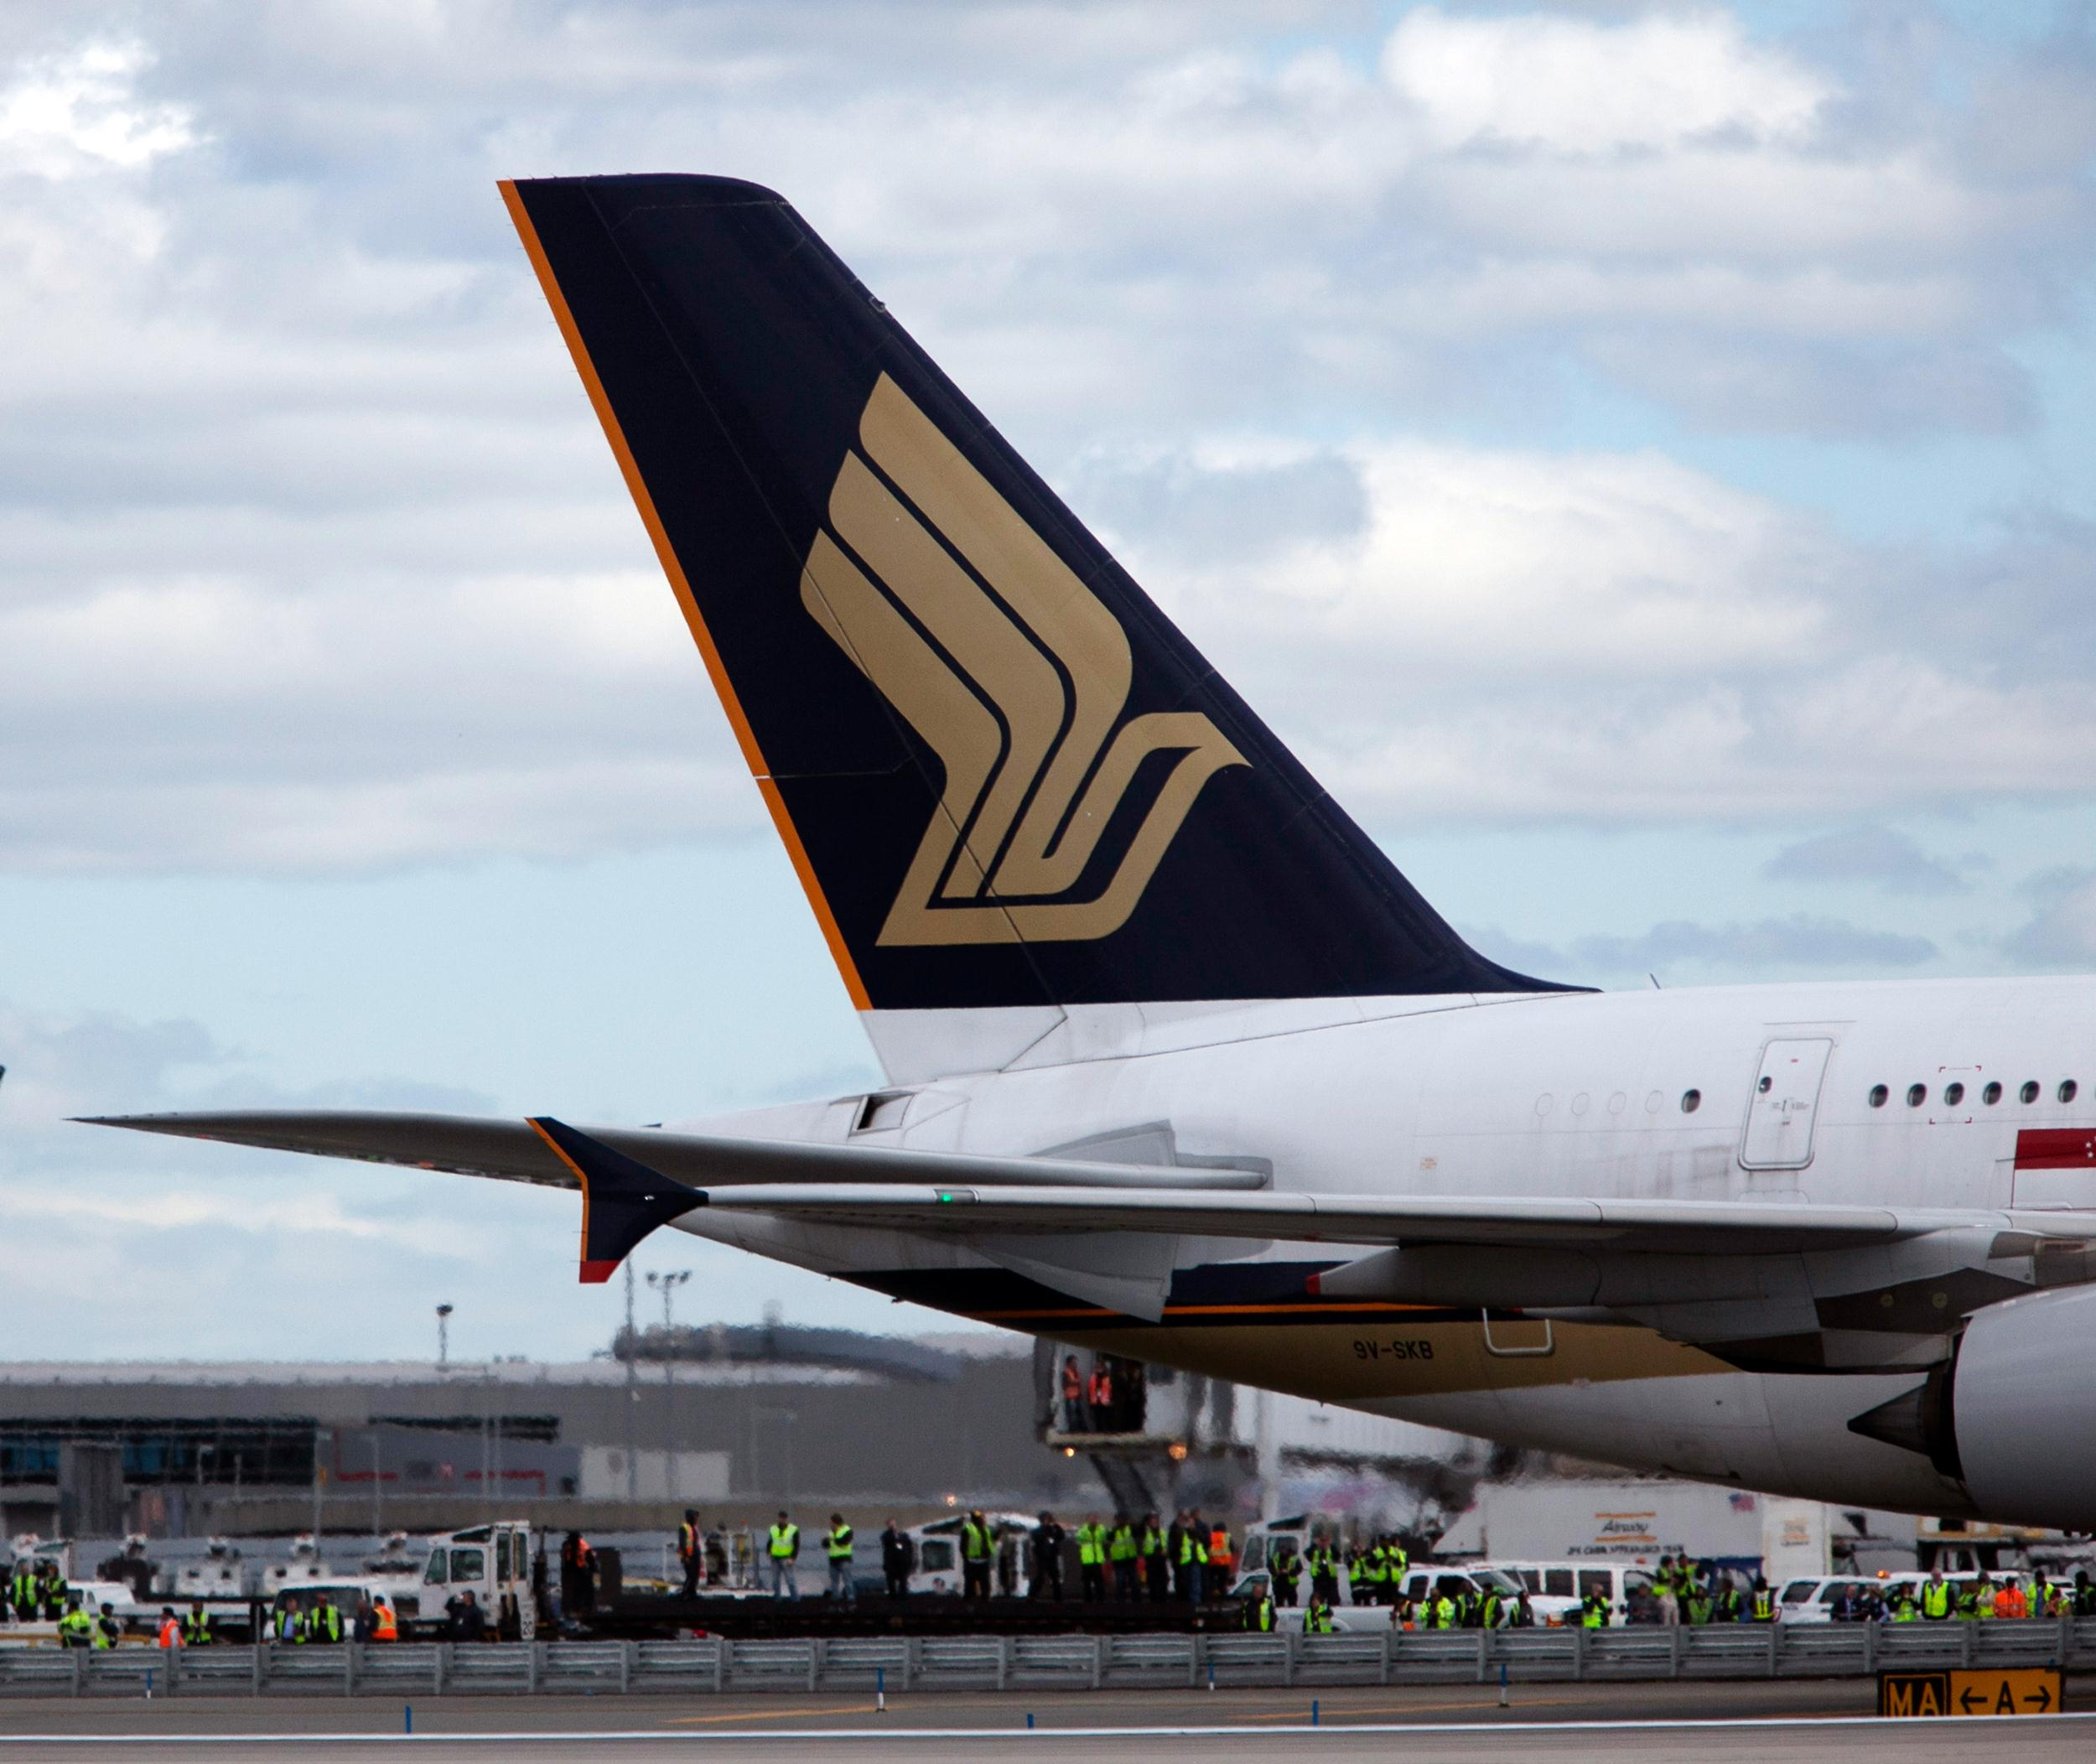 A Singapore Airlines plane is seen at John F. Kennedy International Airport